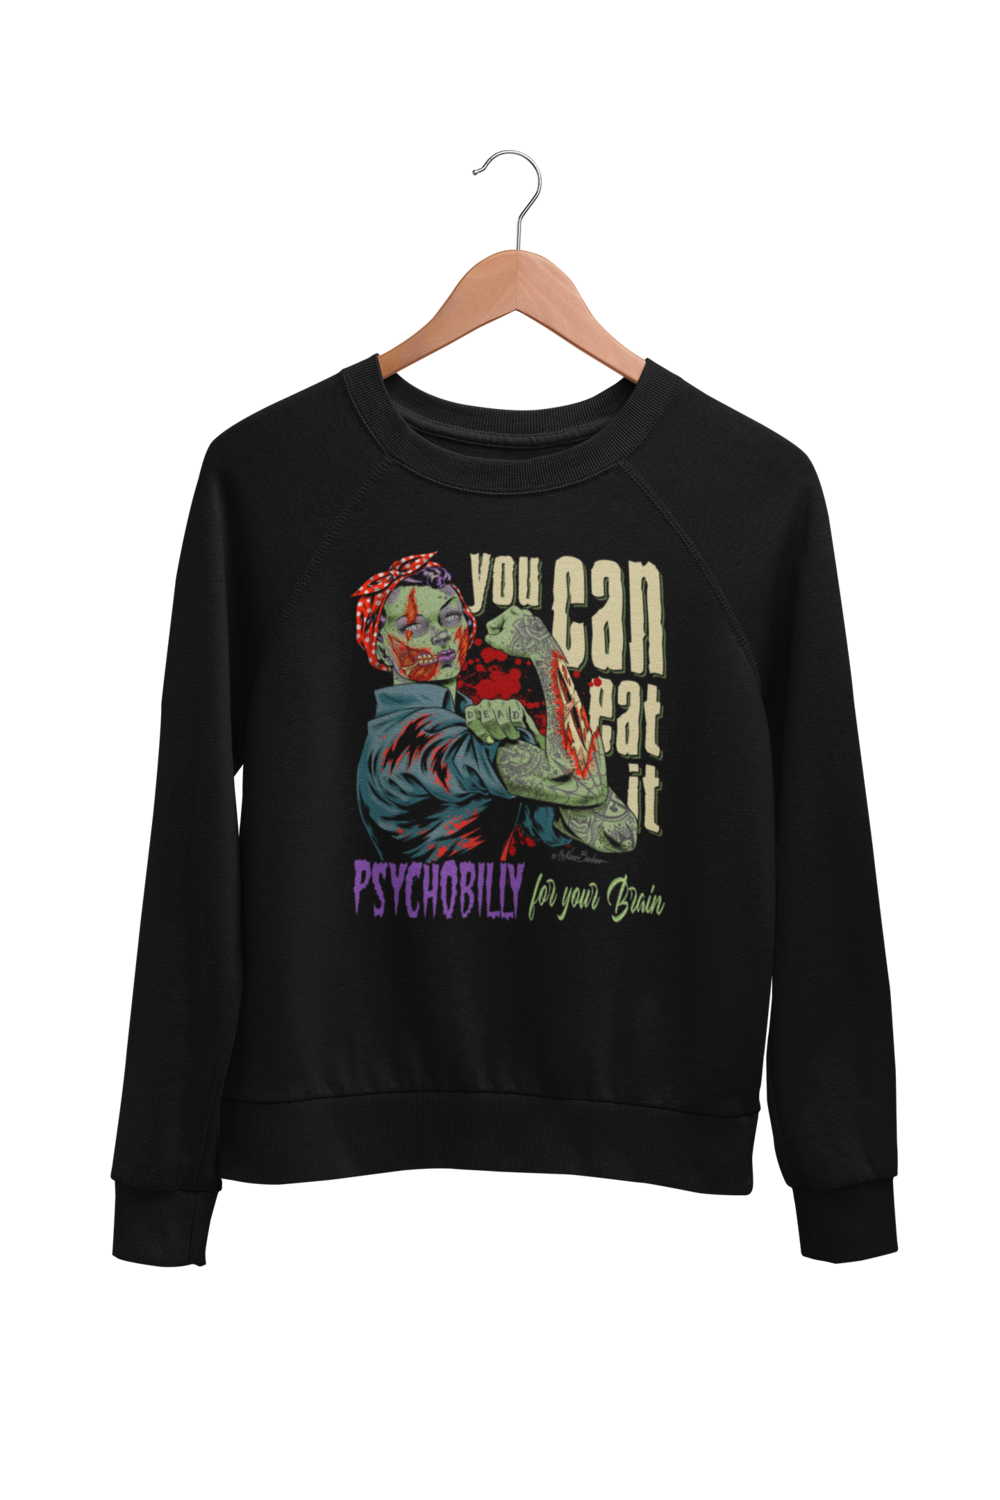 YOU CAN EAT IT SWEATSHIRT UNISEX BY NANO BARBERO